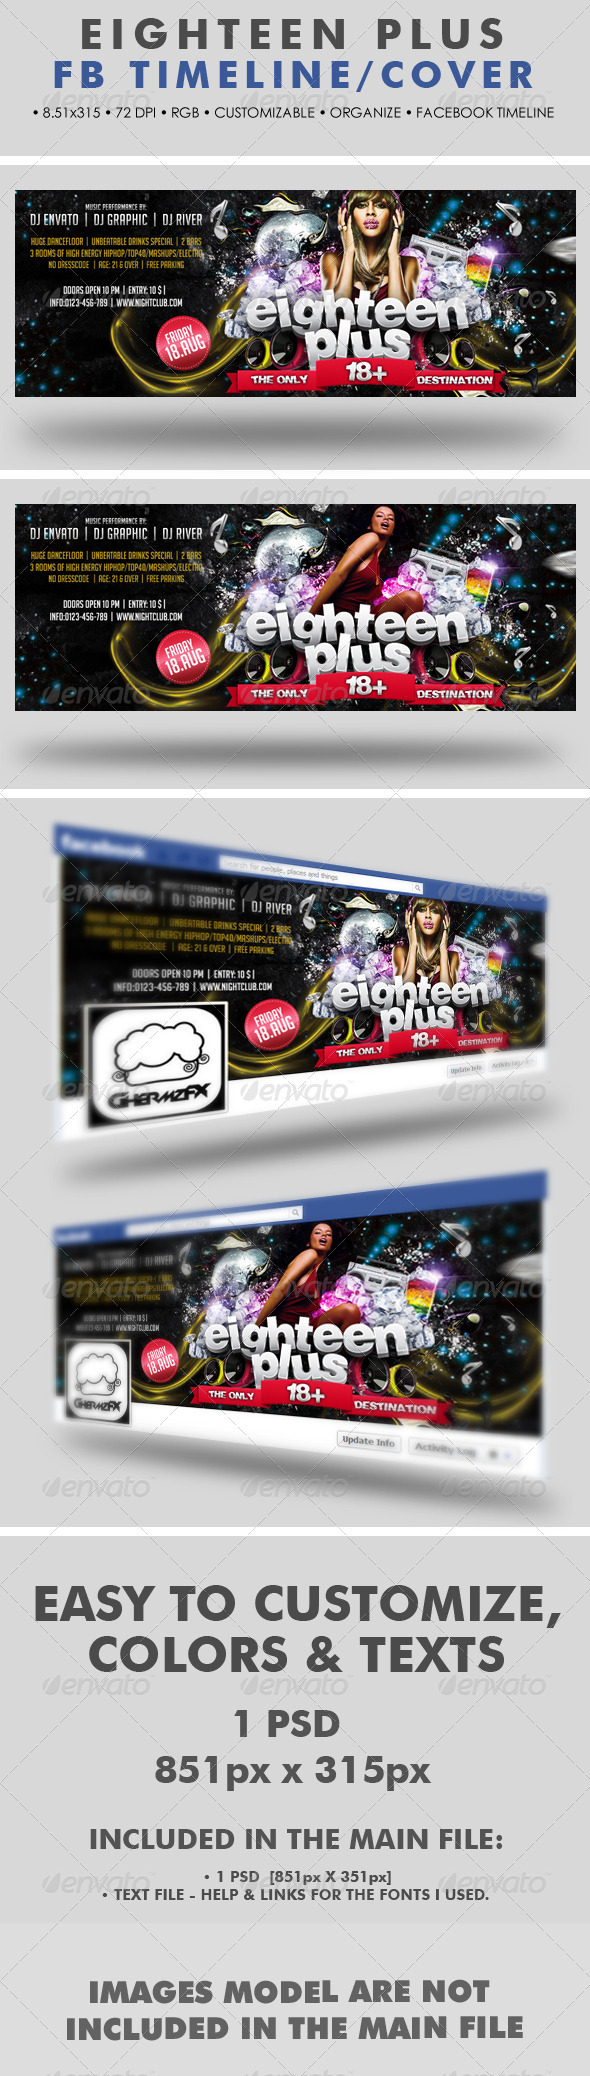 GraphicRiver Eighteen Plus Facebook Timeline Cover 2642310